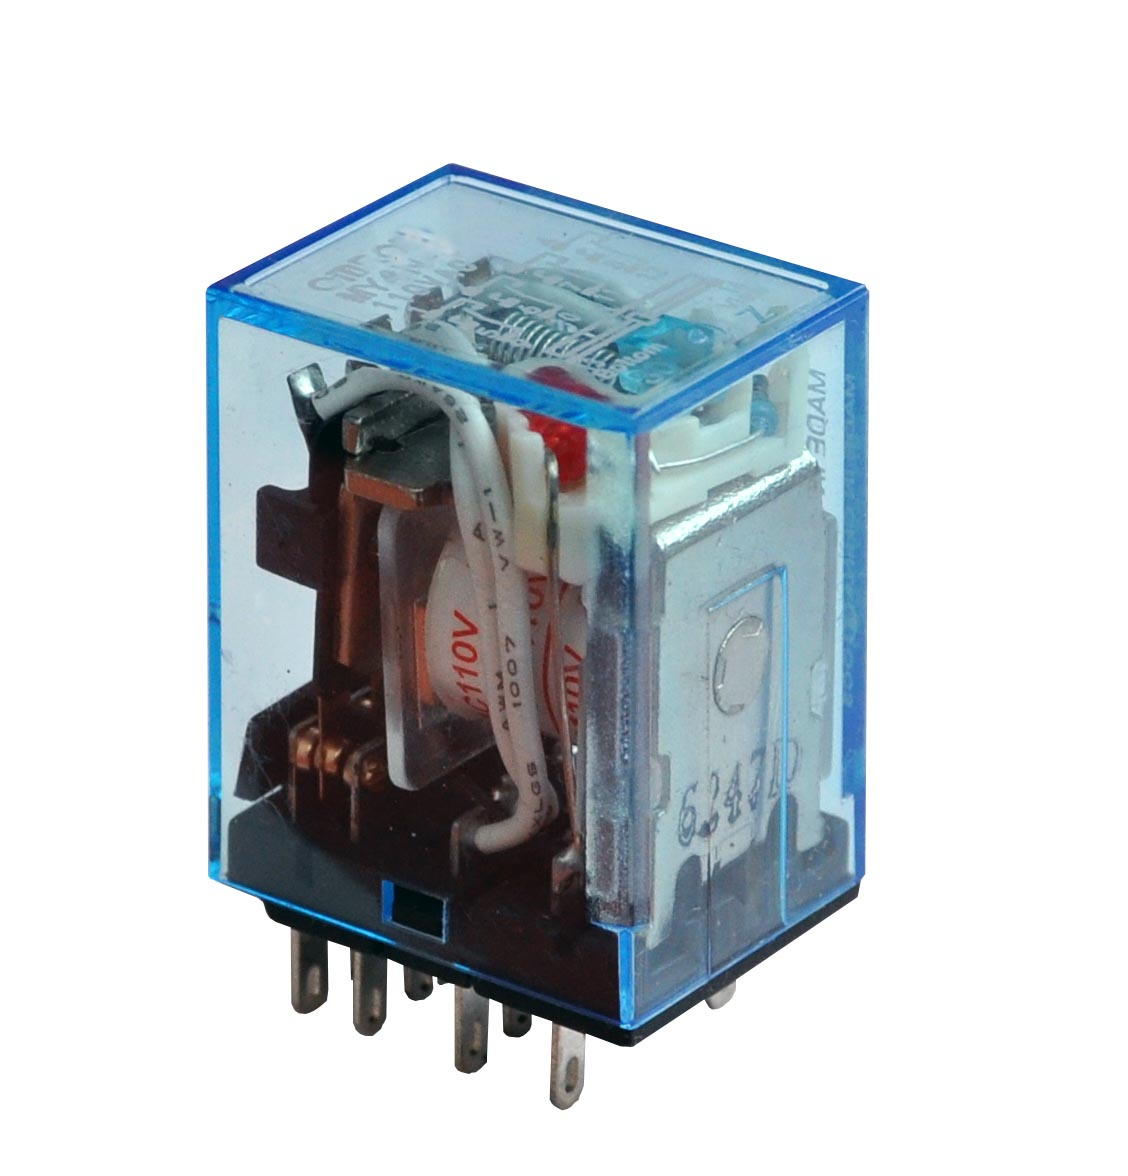 Ac220v Relay Omron My4nj Manufacturer From Ningbo Current Hrp18